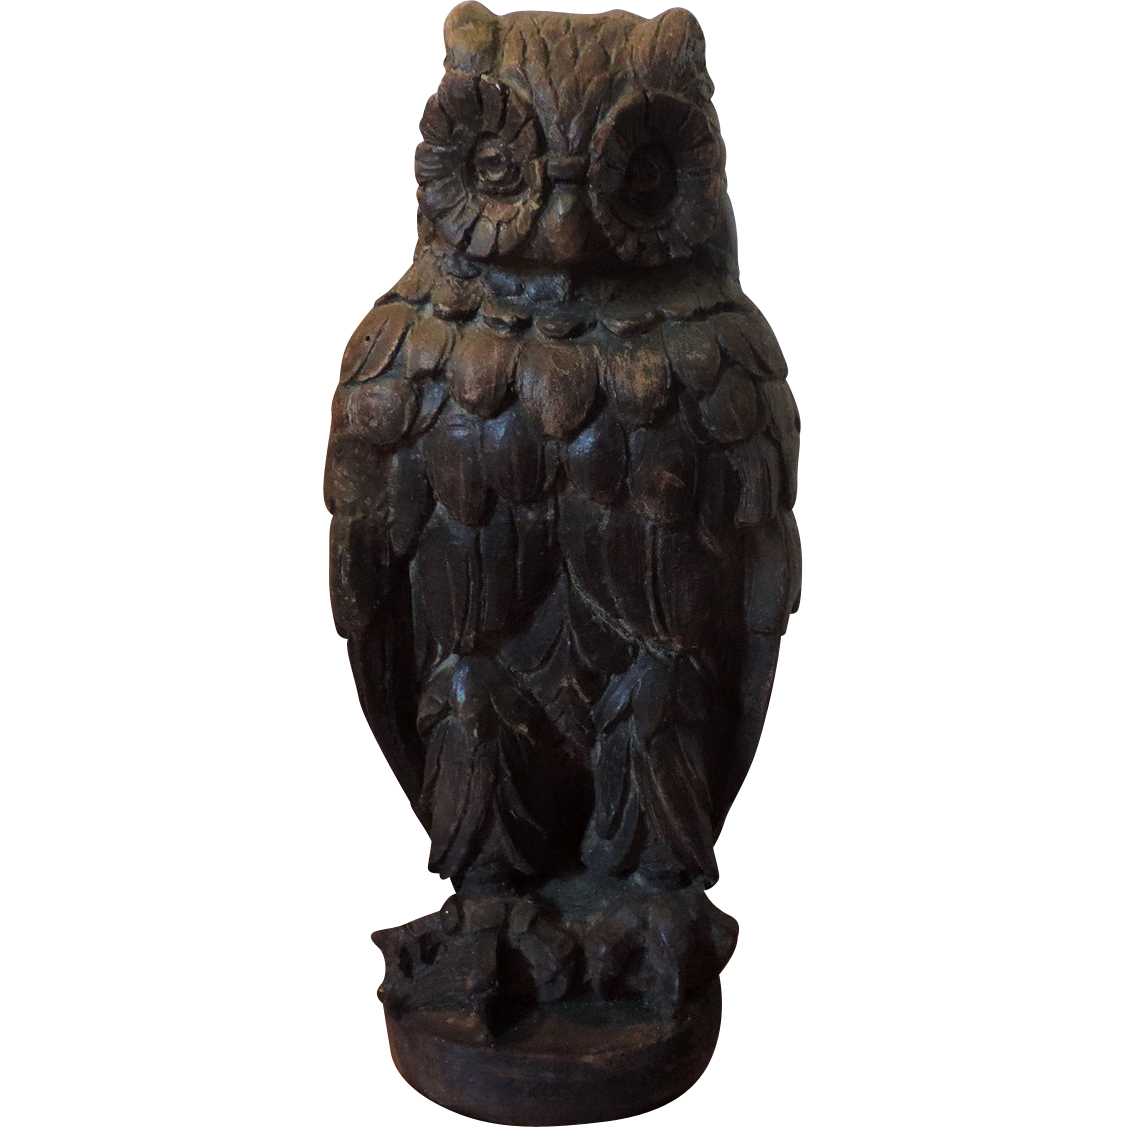 Ornamental owls for garden - Architectural Element Roof Ornament Terra Cotta Owl Garden Statue